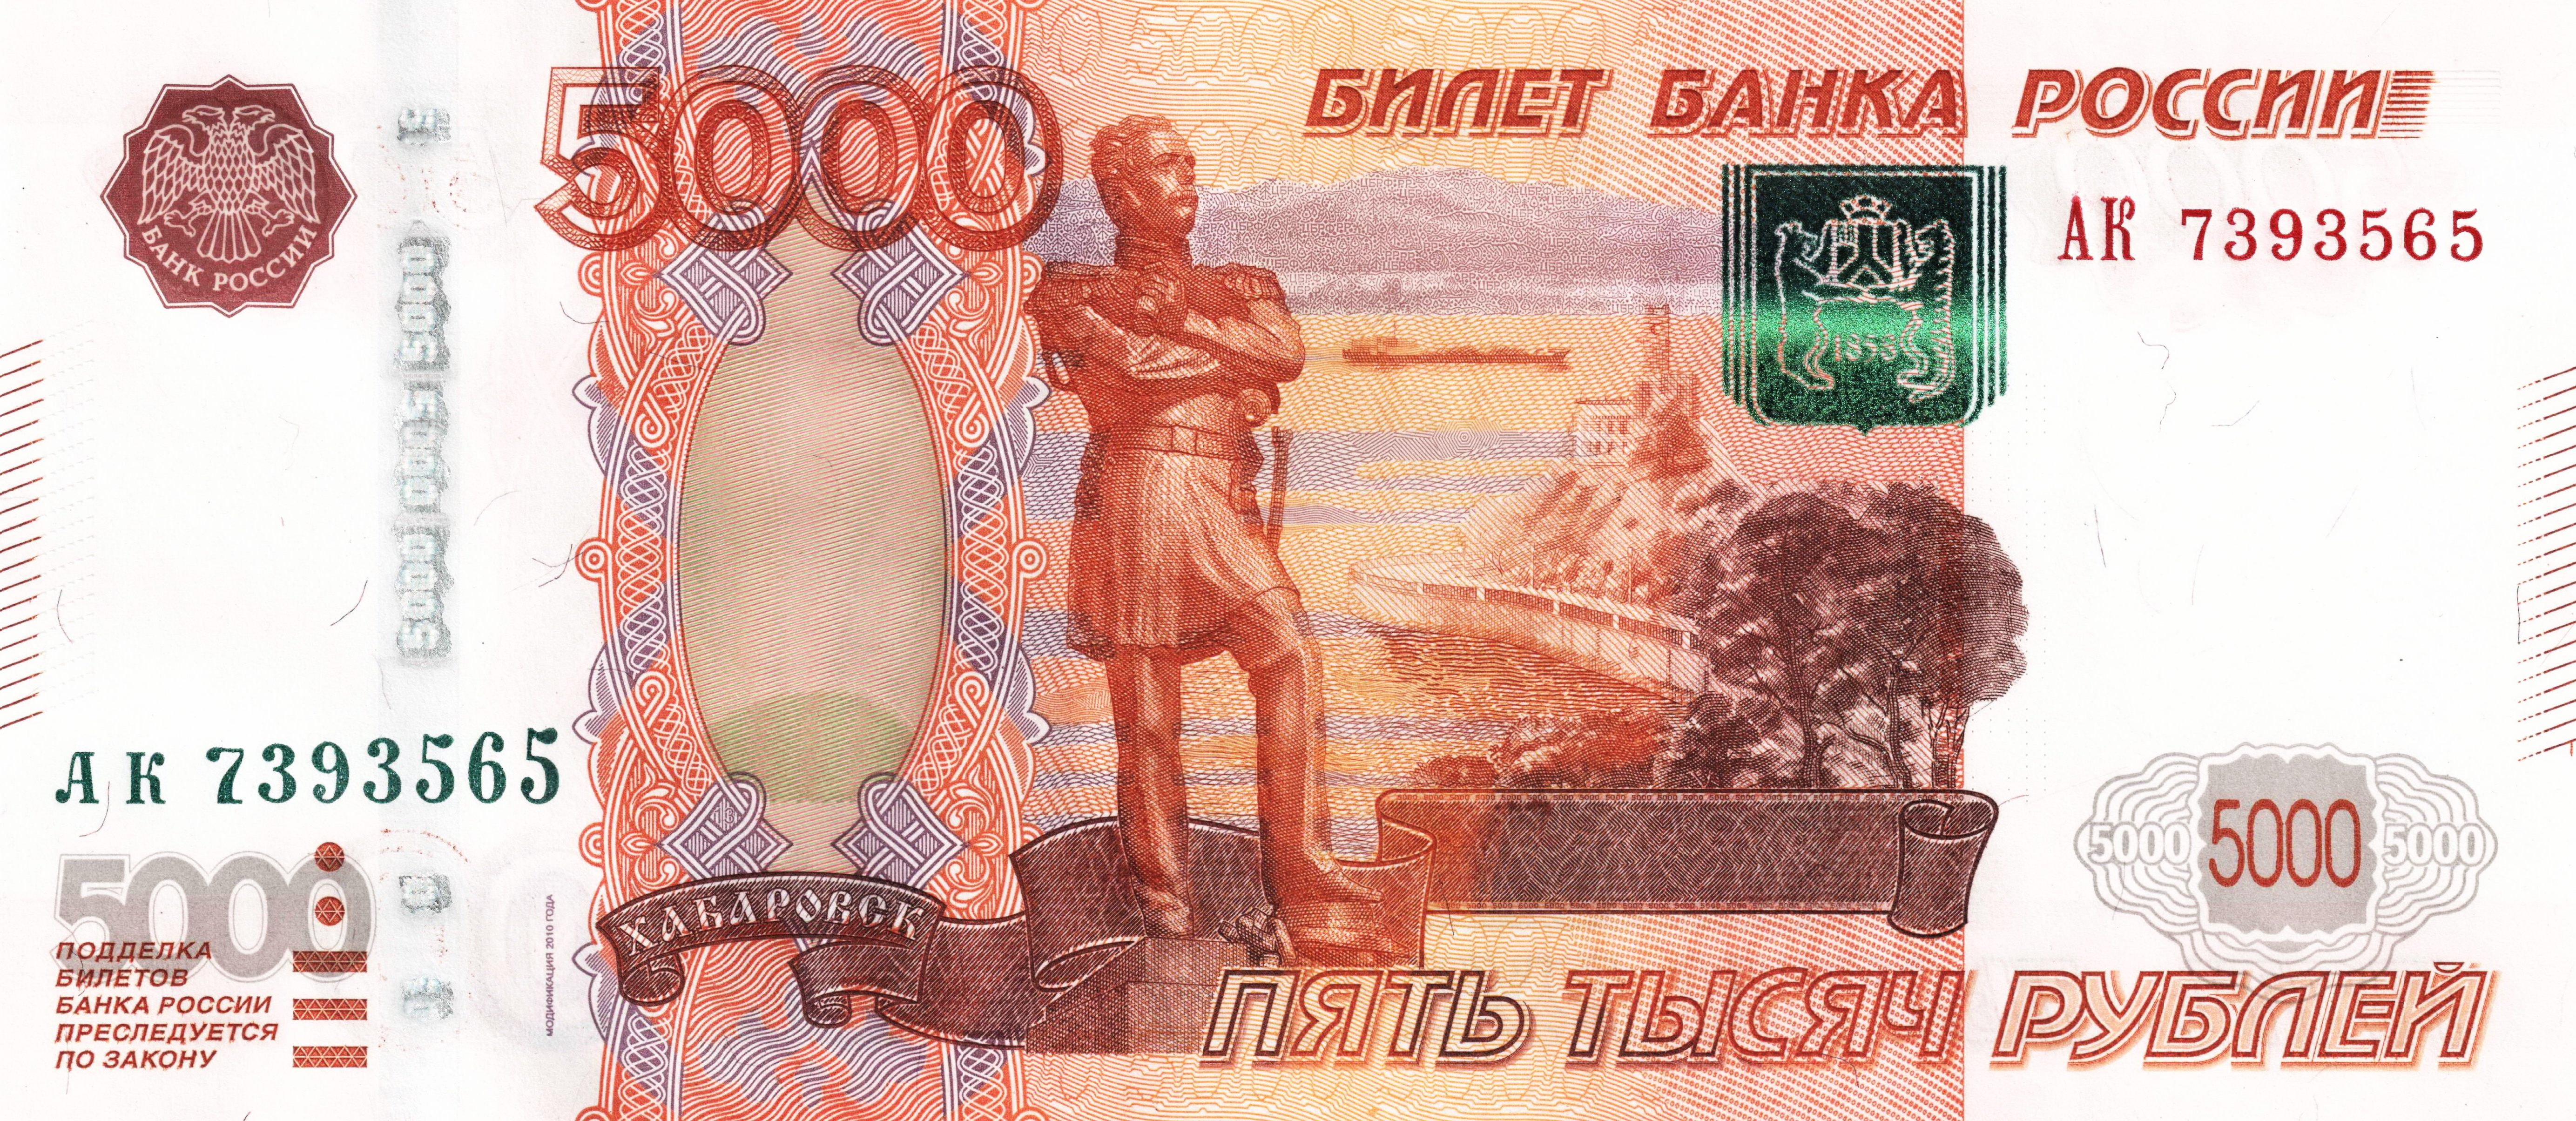 http://upload.wikimedia.org/wikipedia/commons/b/bf/Banknote_5000_rubles_2010_front.jpg